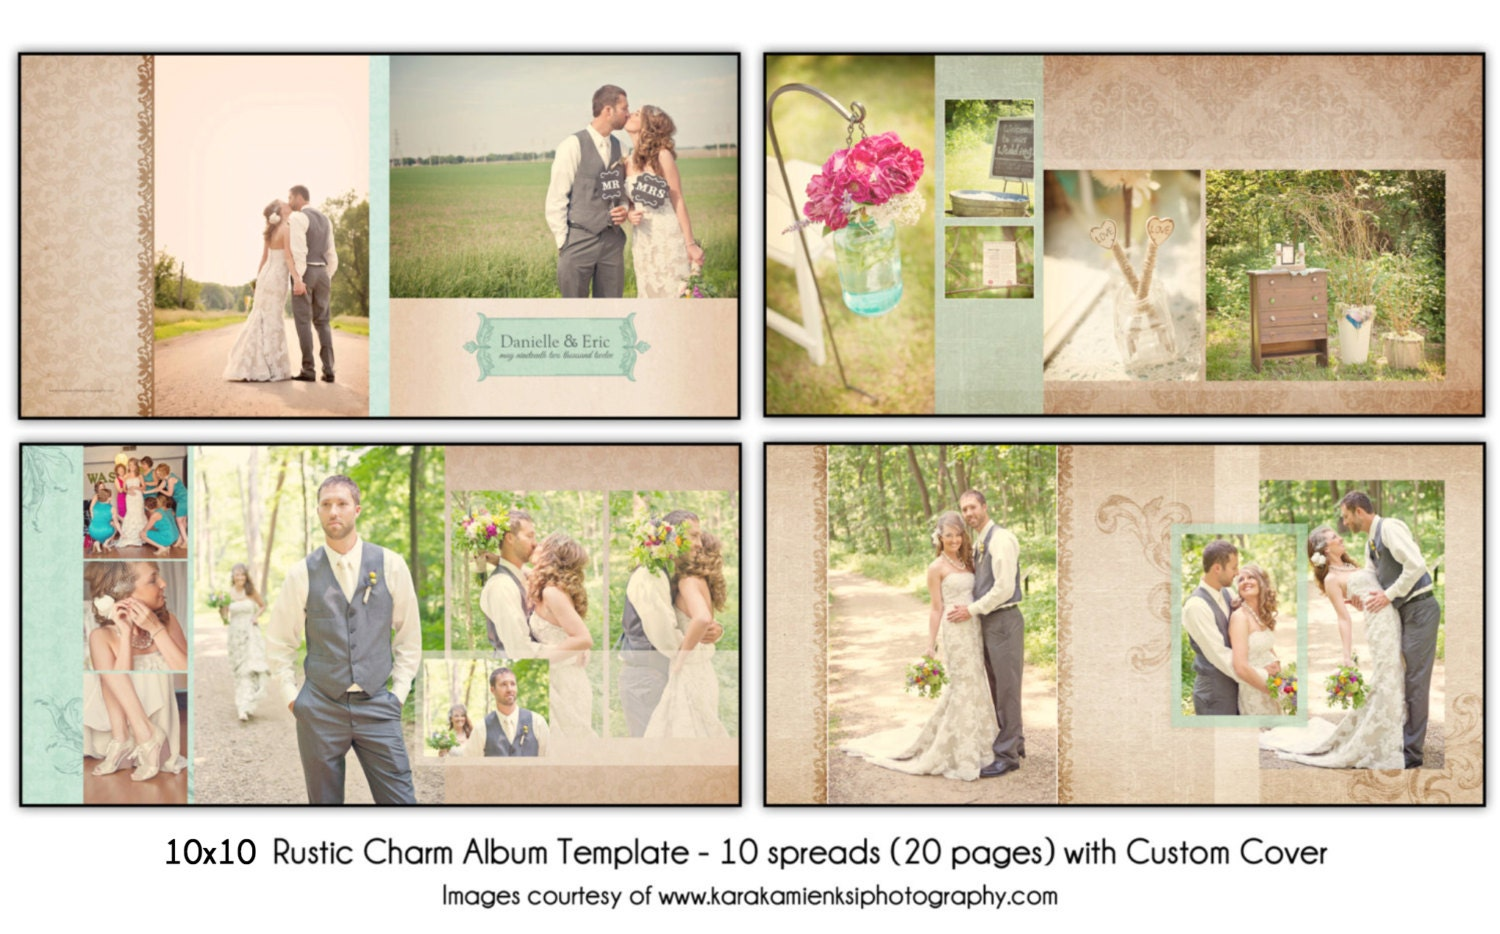 10x10 Album Template RUSTIC CHARM 10 spread 20-page